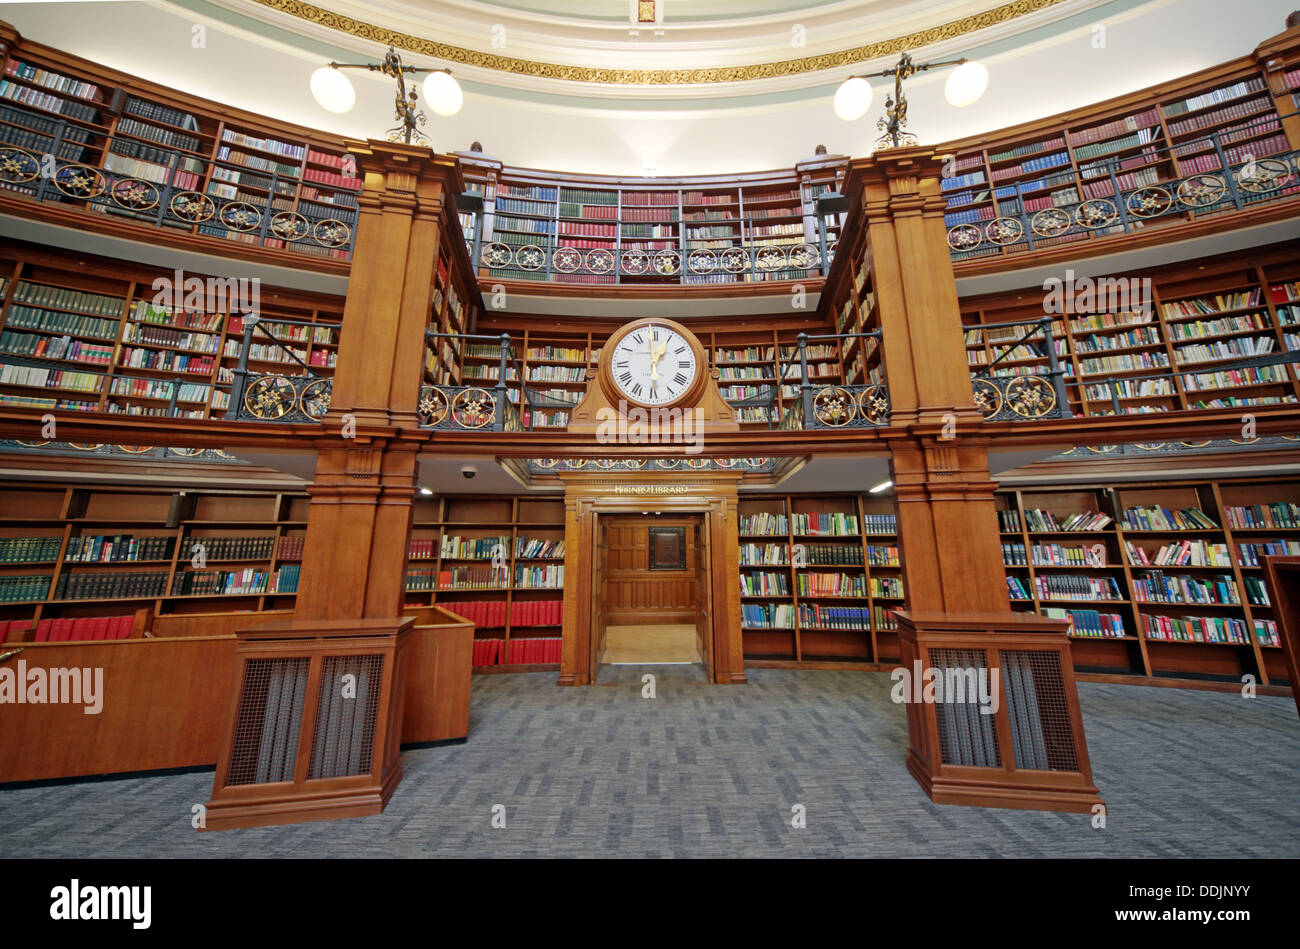 Clock over door to Honby library, Liverpool central library Picton reading rooms Stock Photo